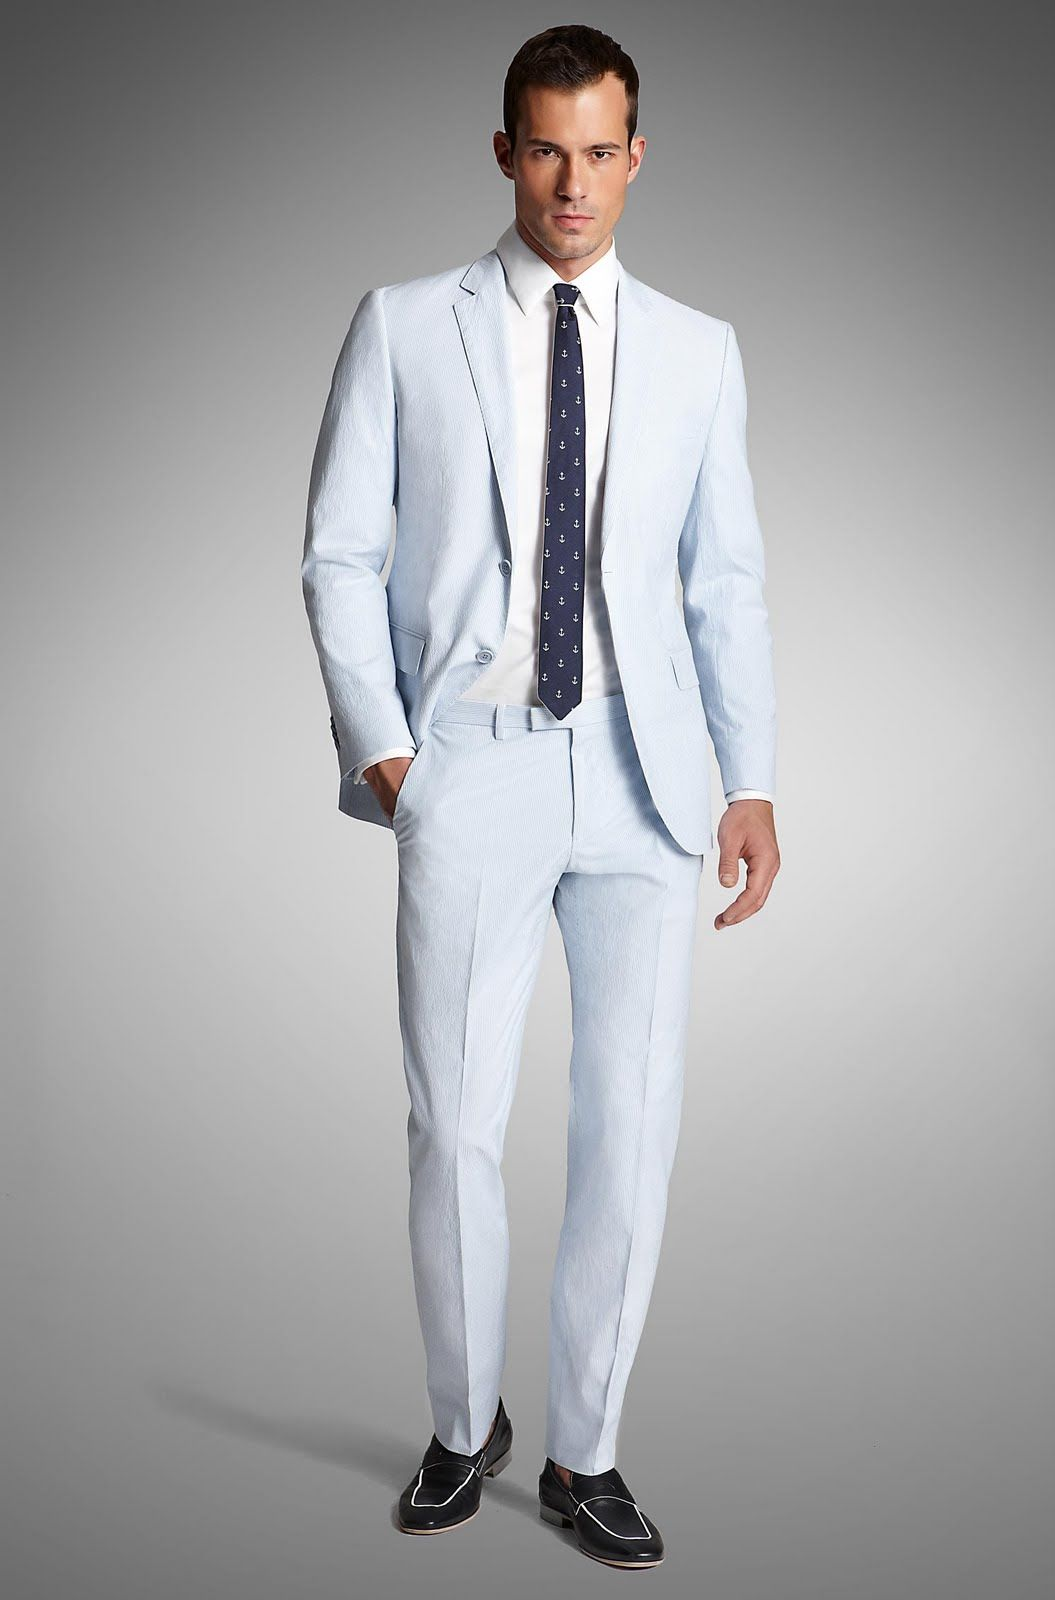 Mens Fashion Suits 2014 Hd Best Mens Suit In 2014 The Style Fashion Blog Pictures Funtweak